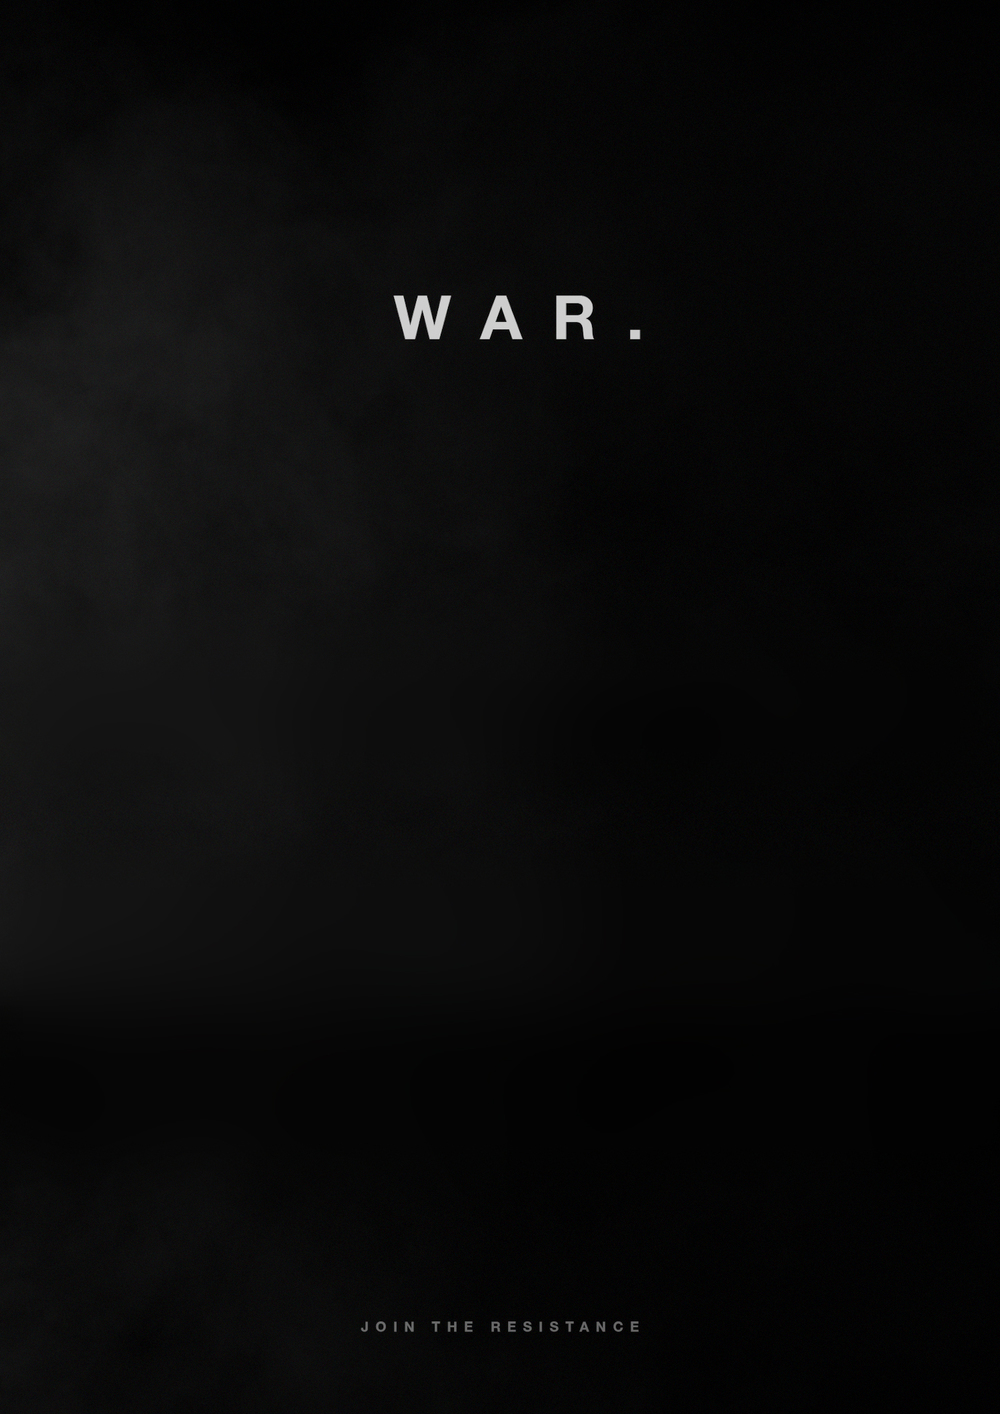 Lunar Animation - WAR. Movie Poster